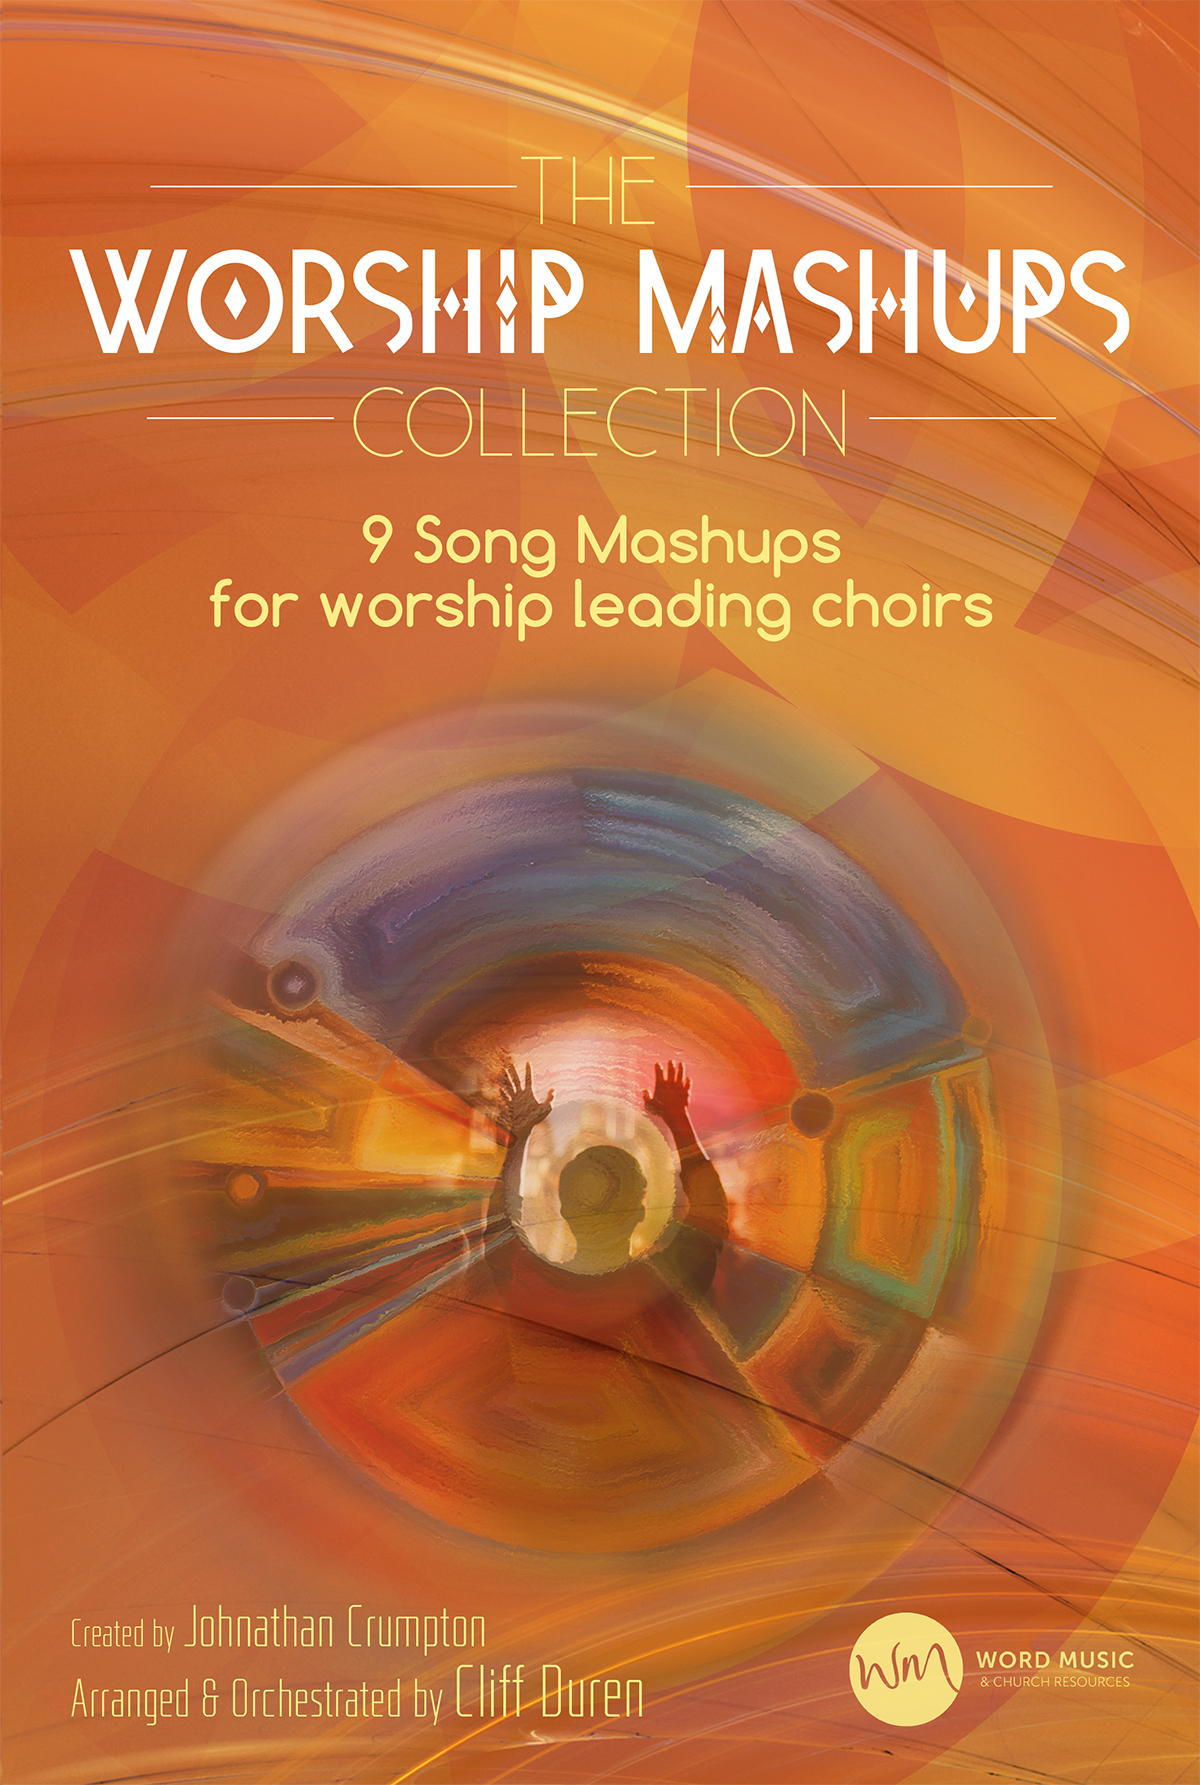 The Worship Mashups Collection